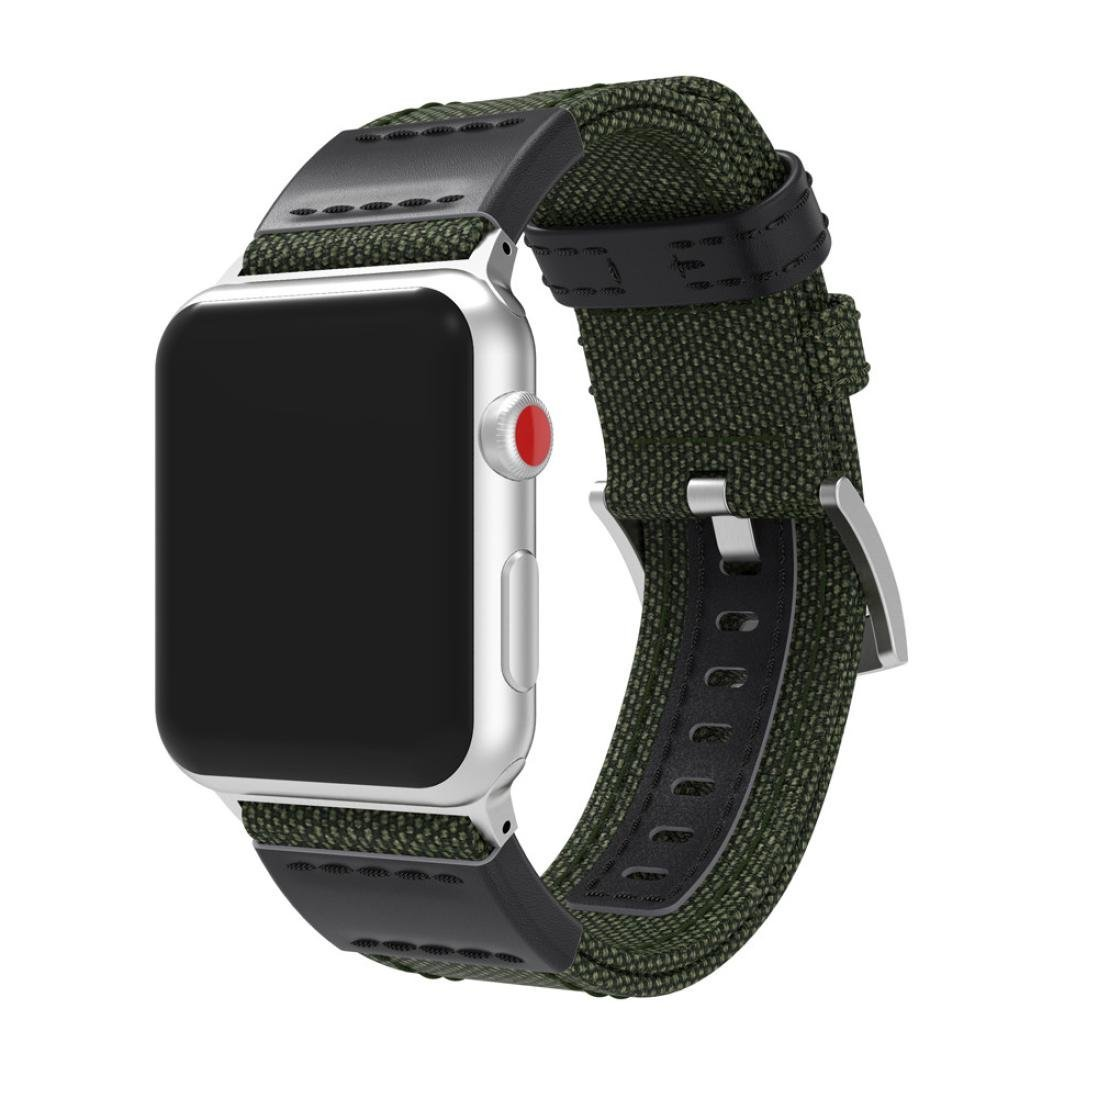 Wenjuan Luxury Canvas Leather Watch Sport Band Wrist Strap For Apple Watch Series 3 38MM (Army Green)